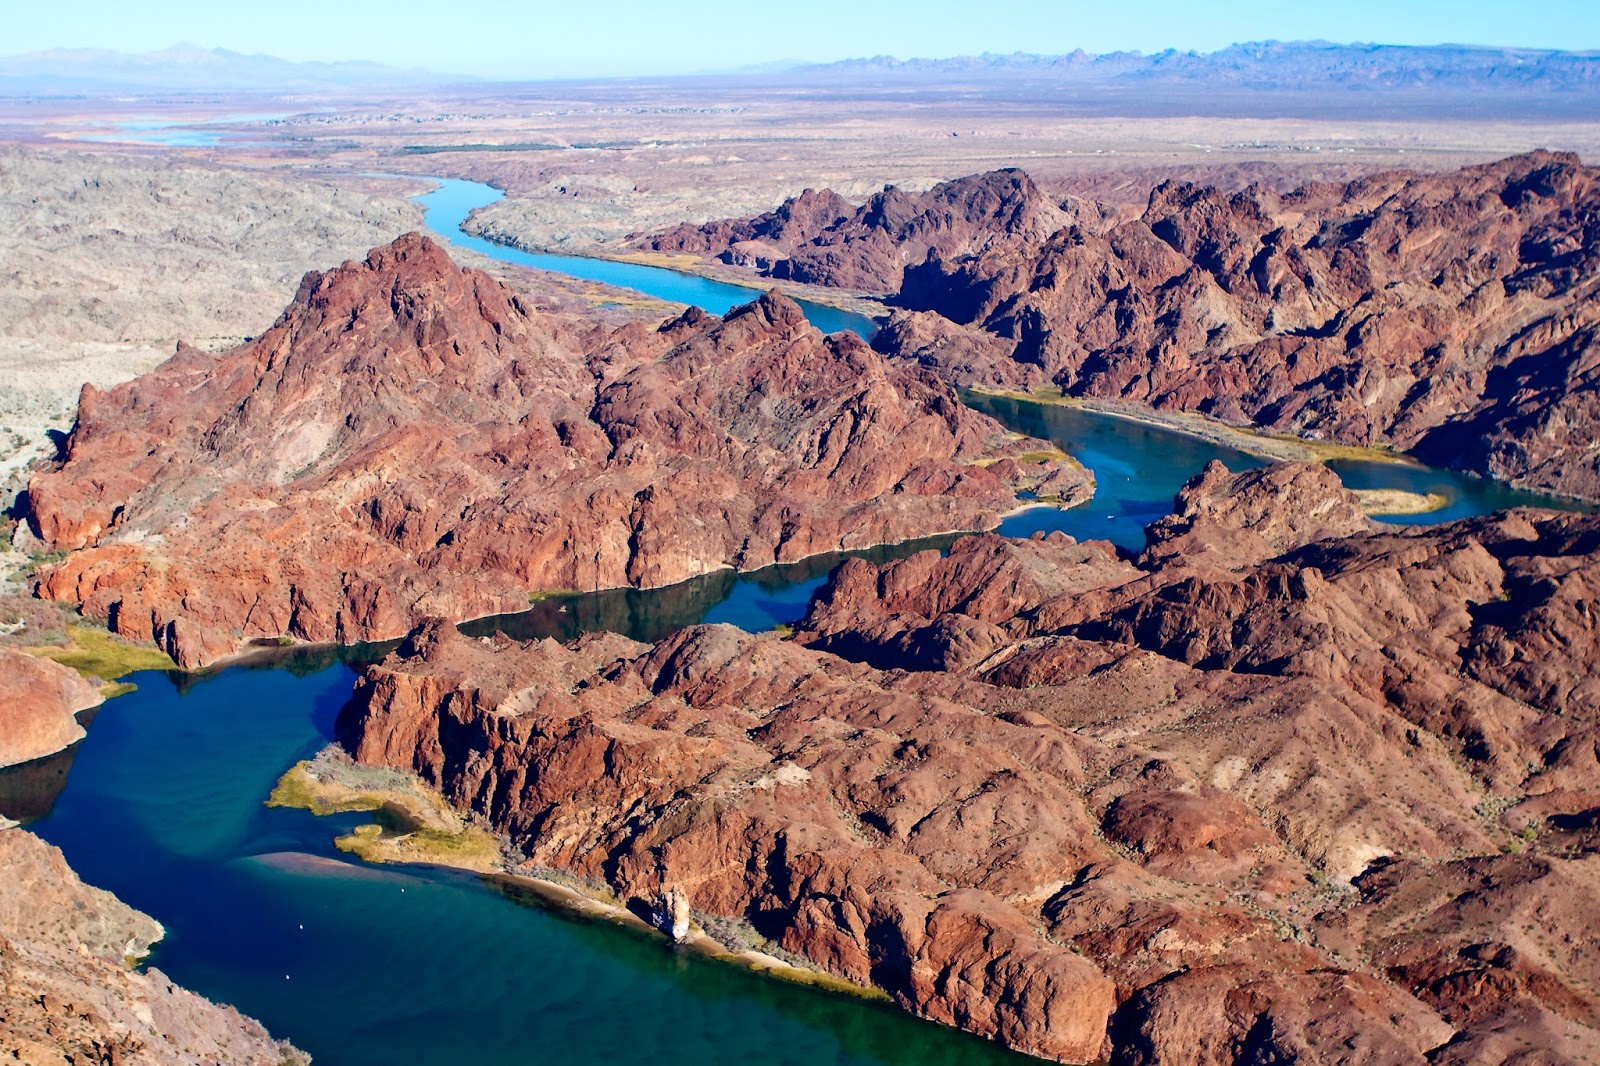 importance of the colorado river Water is life growing pressure on water resources - from population and economic growth, climate change, pollution, and other challenges - has major impacts on our social, economic, and environmental well-being many of our most important aquifers are being over-pumped, causing widespread declines in groundwater levels.